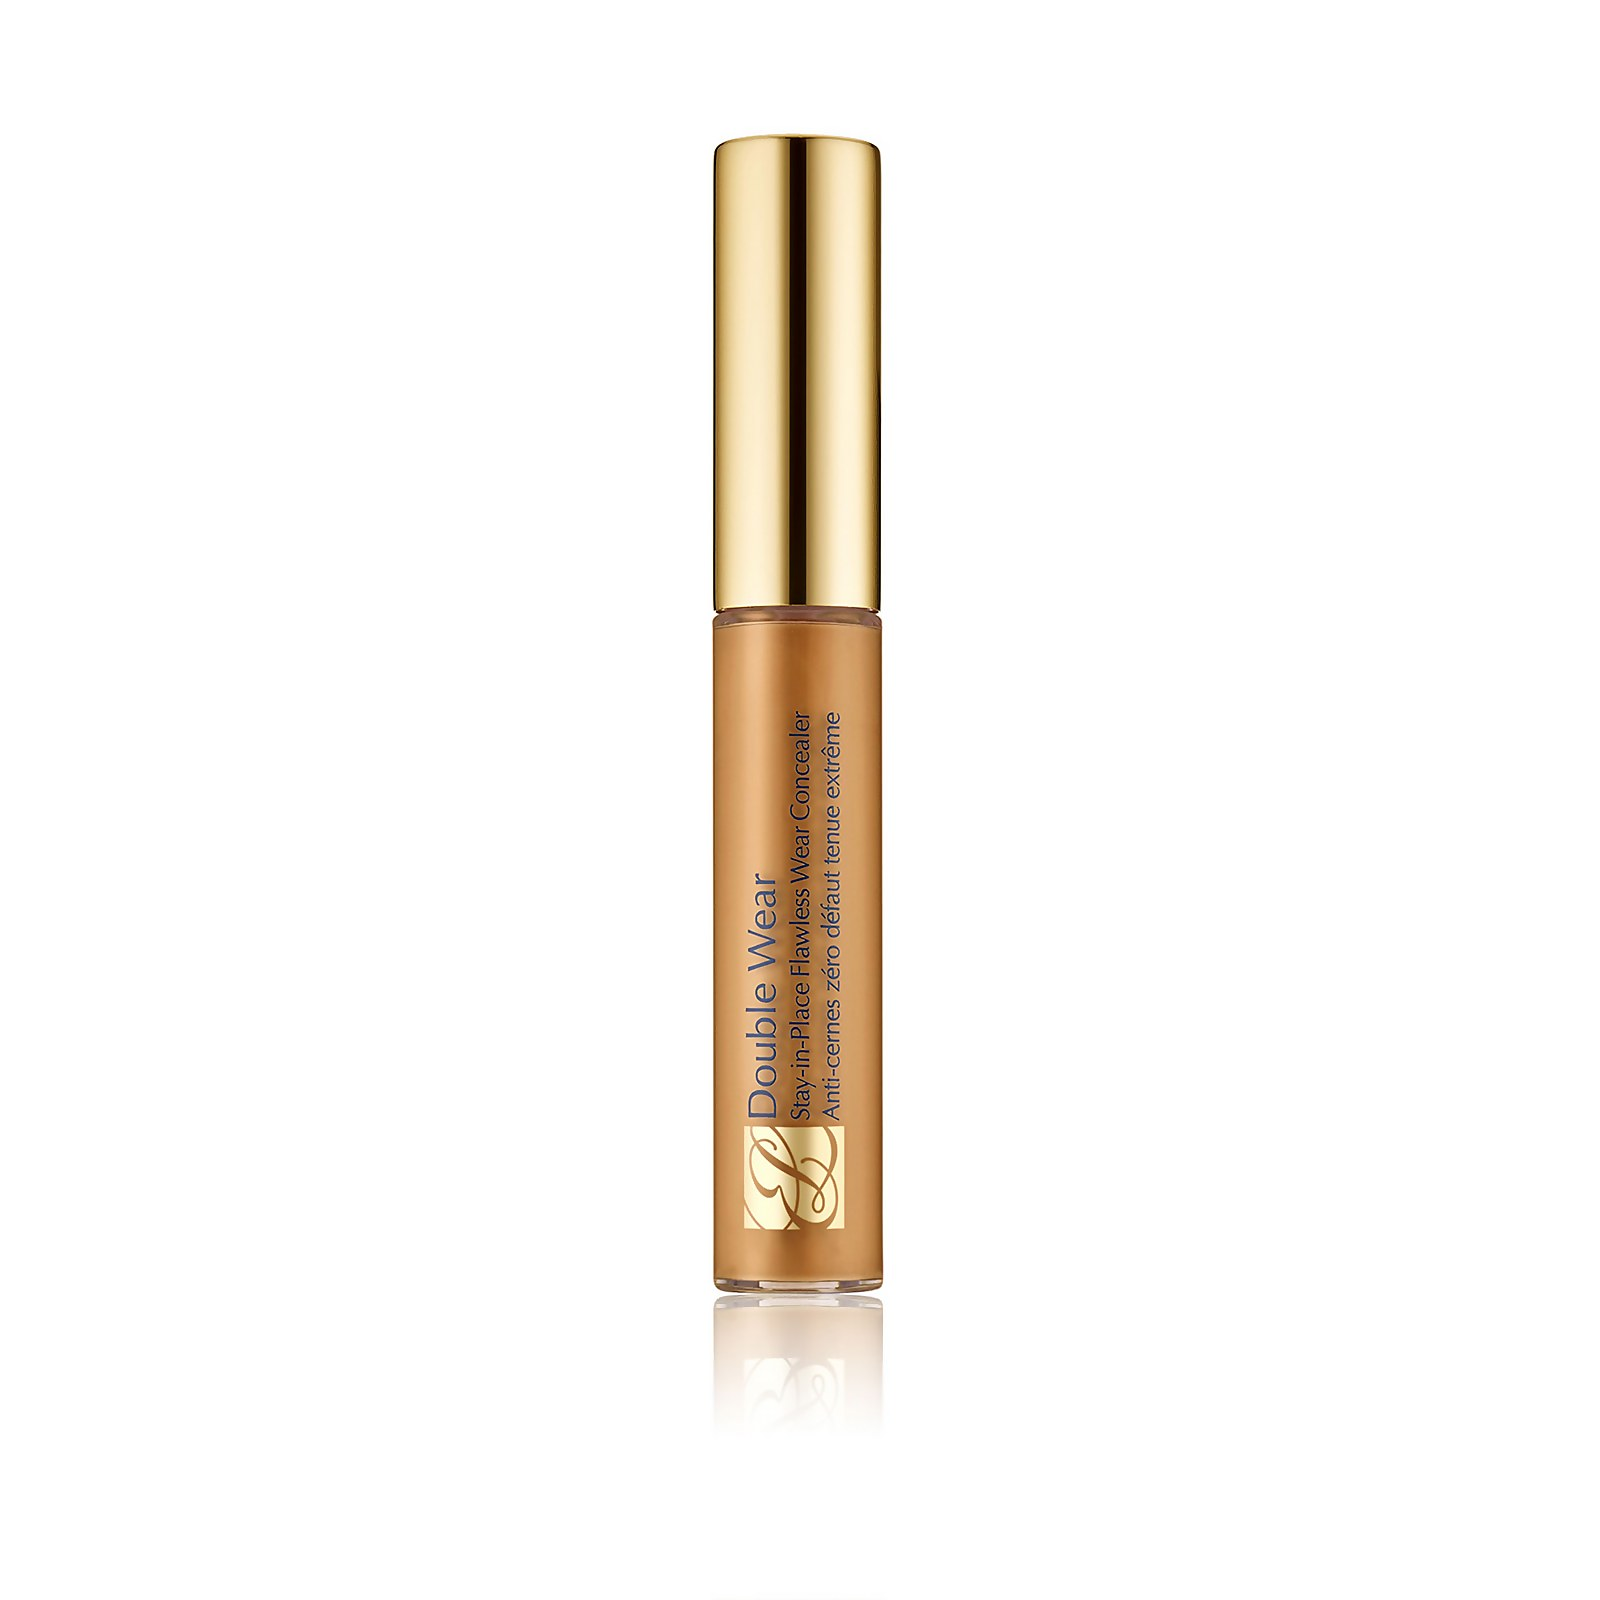 Estée Lauder Double Wear Stay-in-Place Flawless Wear Concealer 7ml (Various Shades) - 4N Medium Deep